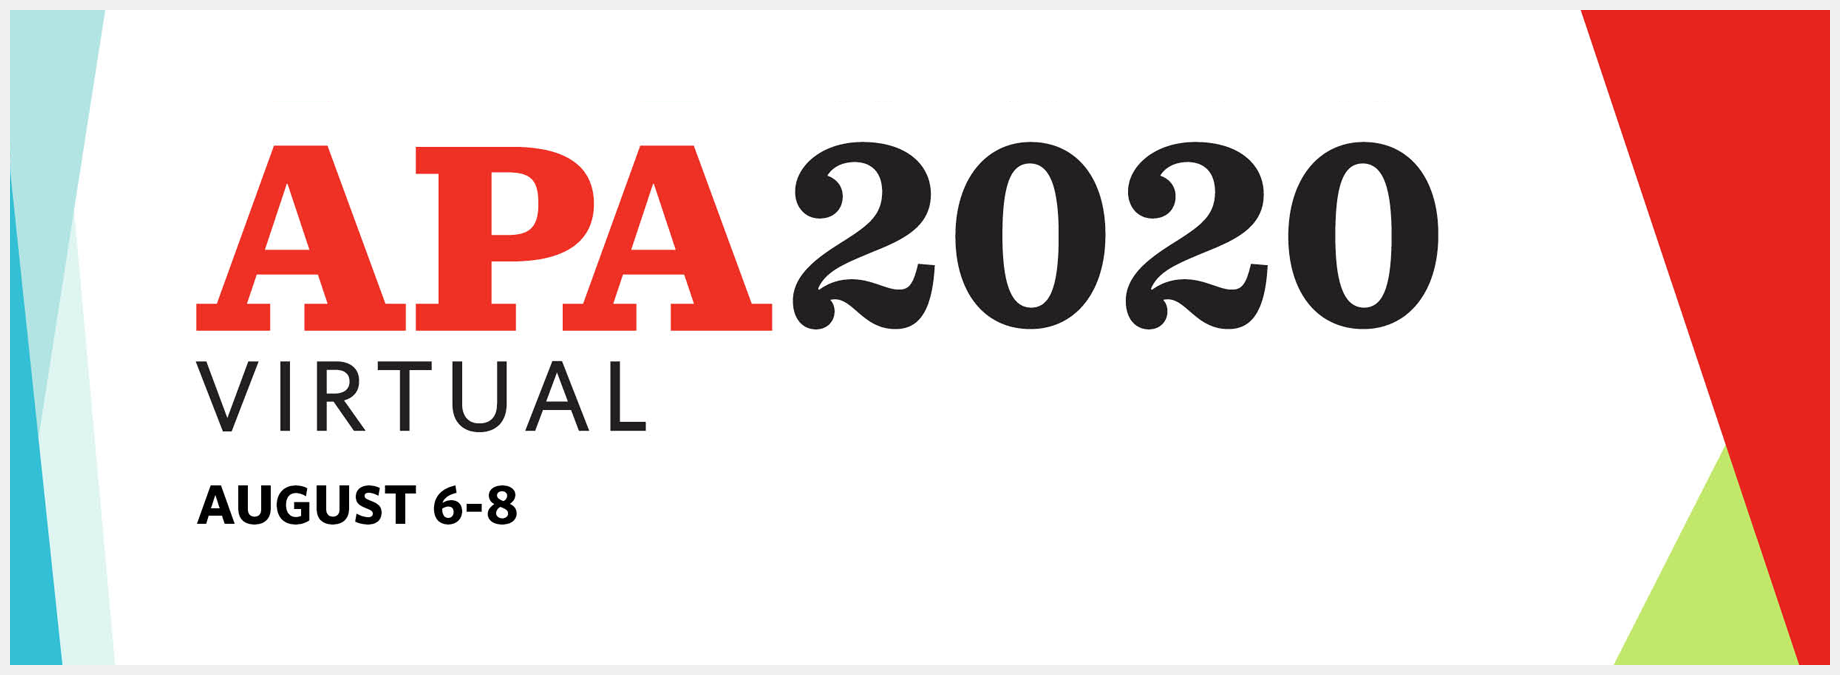 APA 2020 Virtual Convention